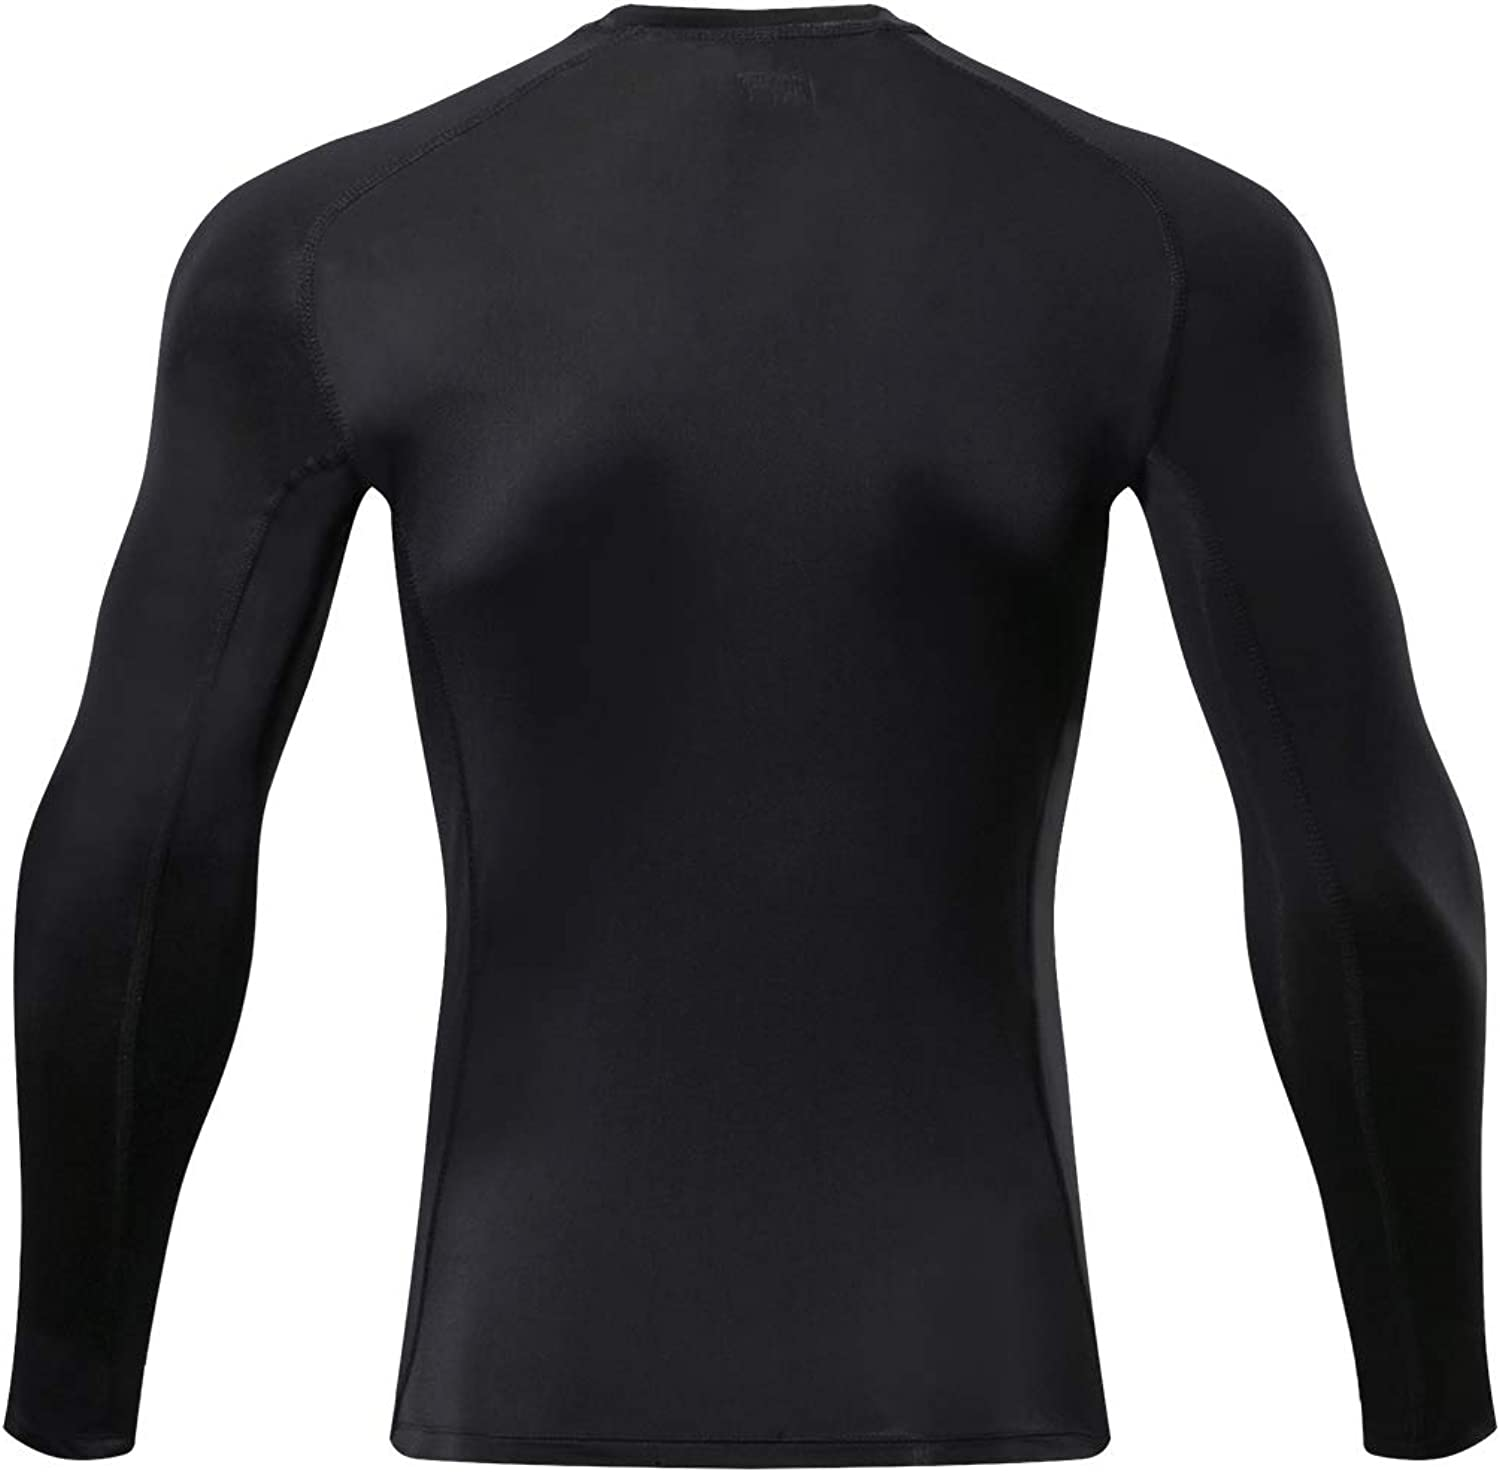 Outto Mens Long Sleeve T-Shirt Cool Dry Compression Base Layer for Sports